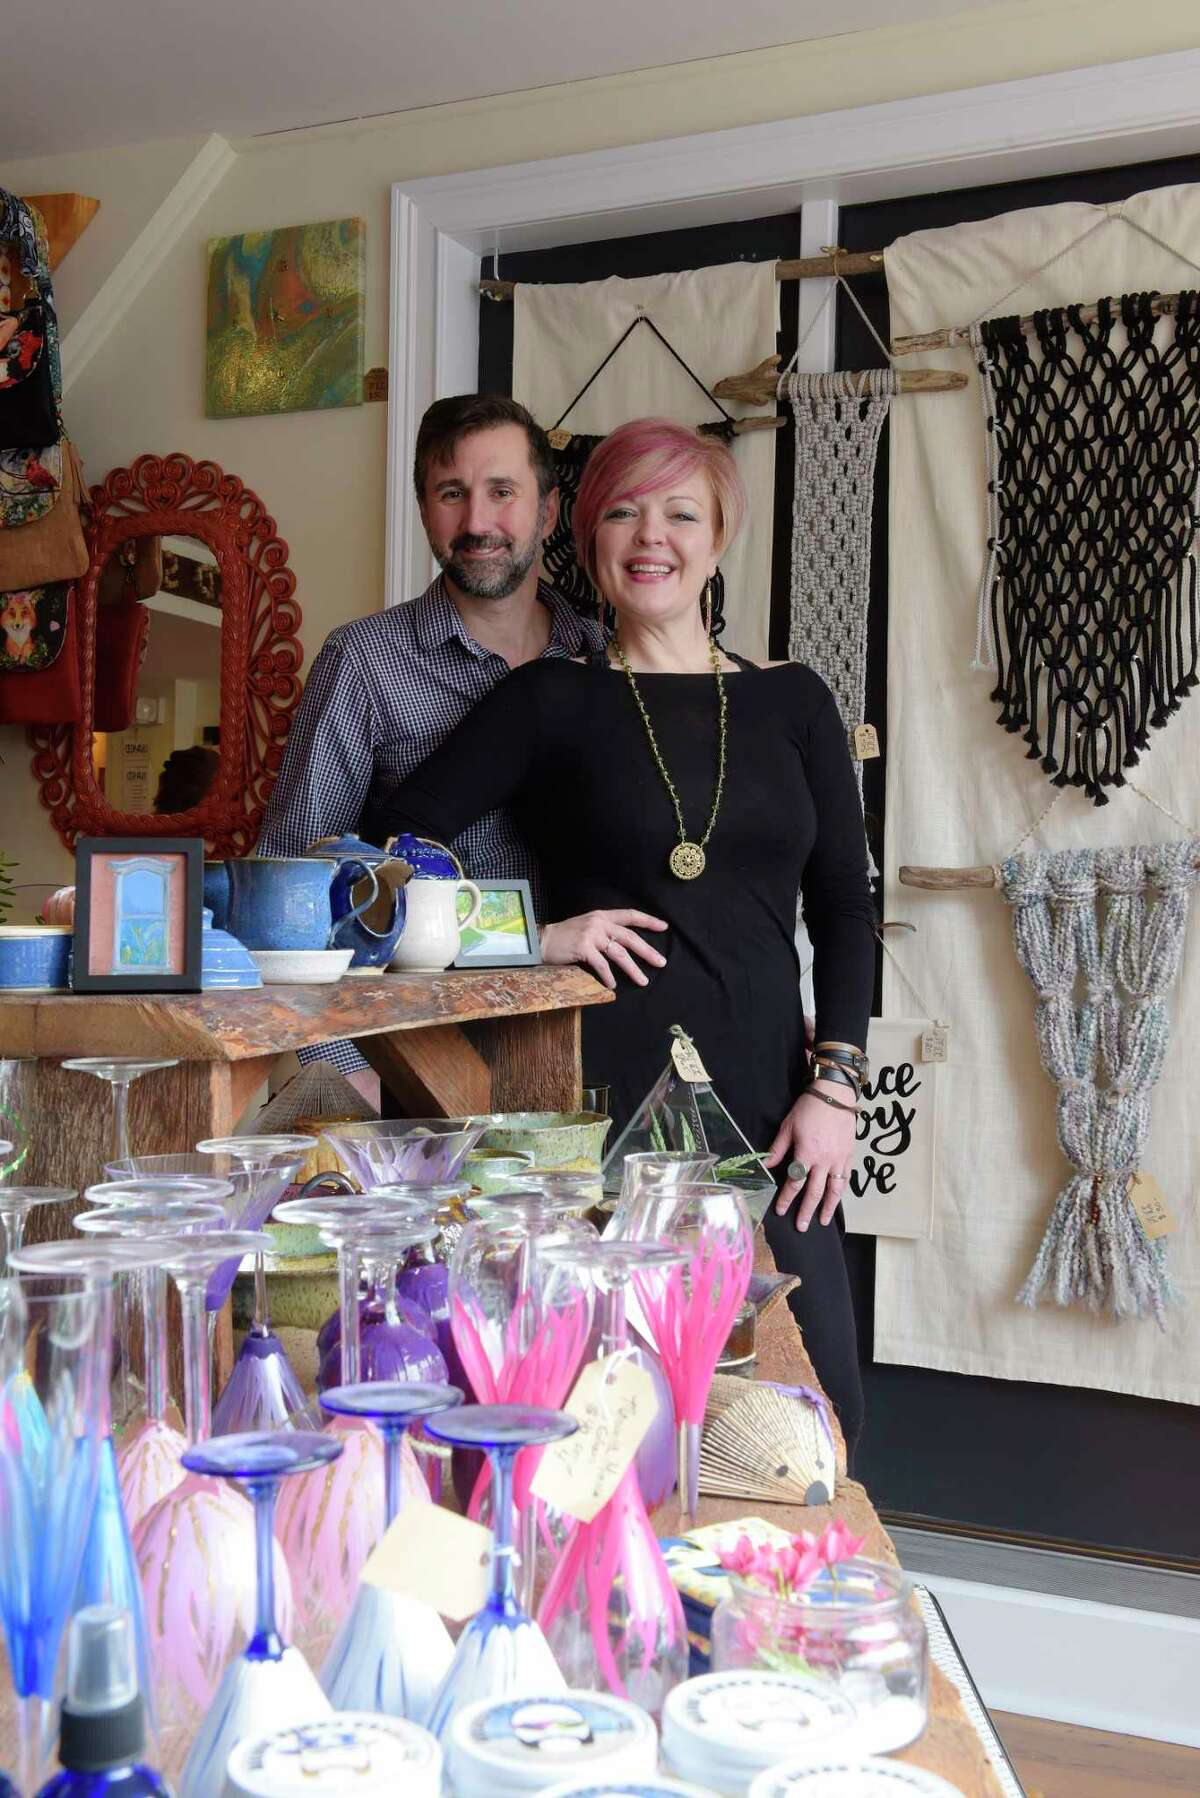 Carrie VanDerhoof and her husband, Greg Wichser, pose inside their store, Boho Chic, on Monday, April 30, 2018, in Ballston Spa, N.Y. (Paul Buckowski/Times Union)